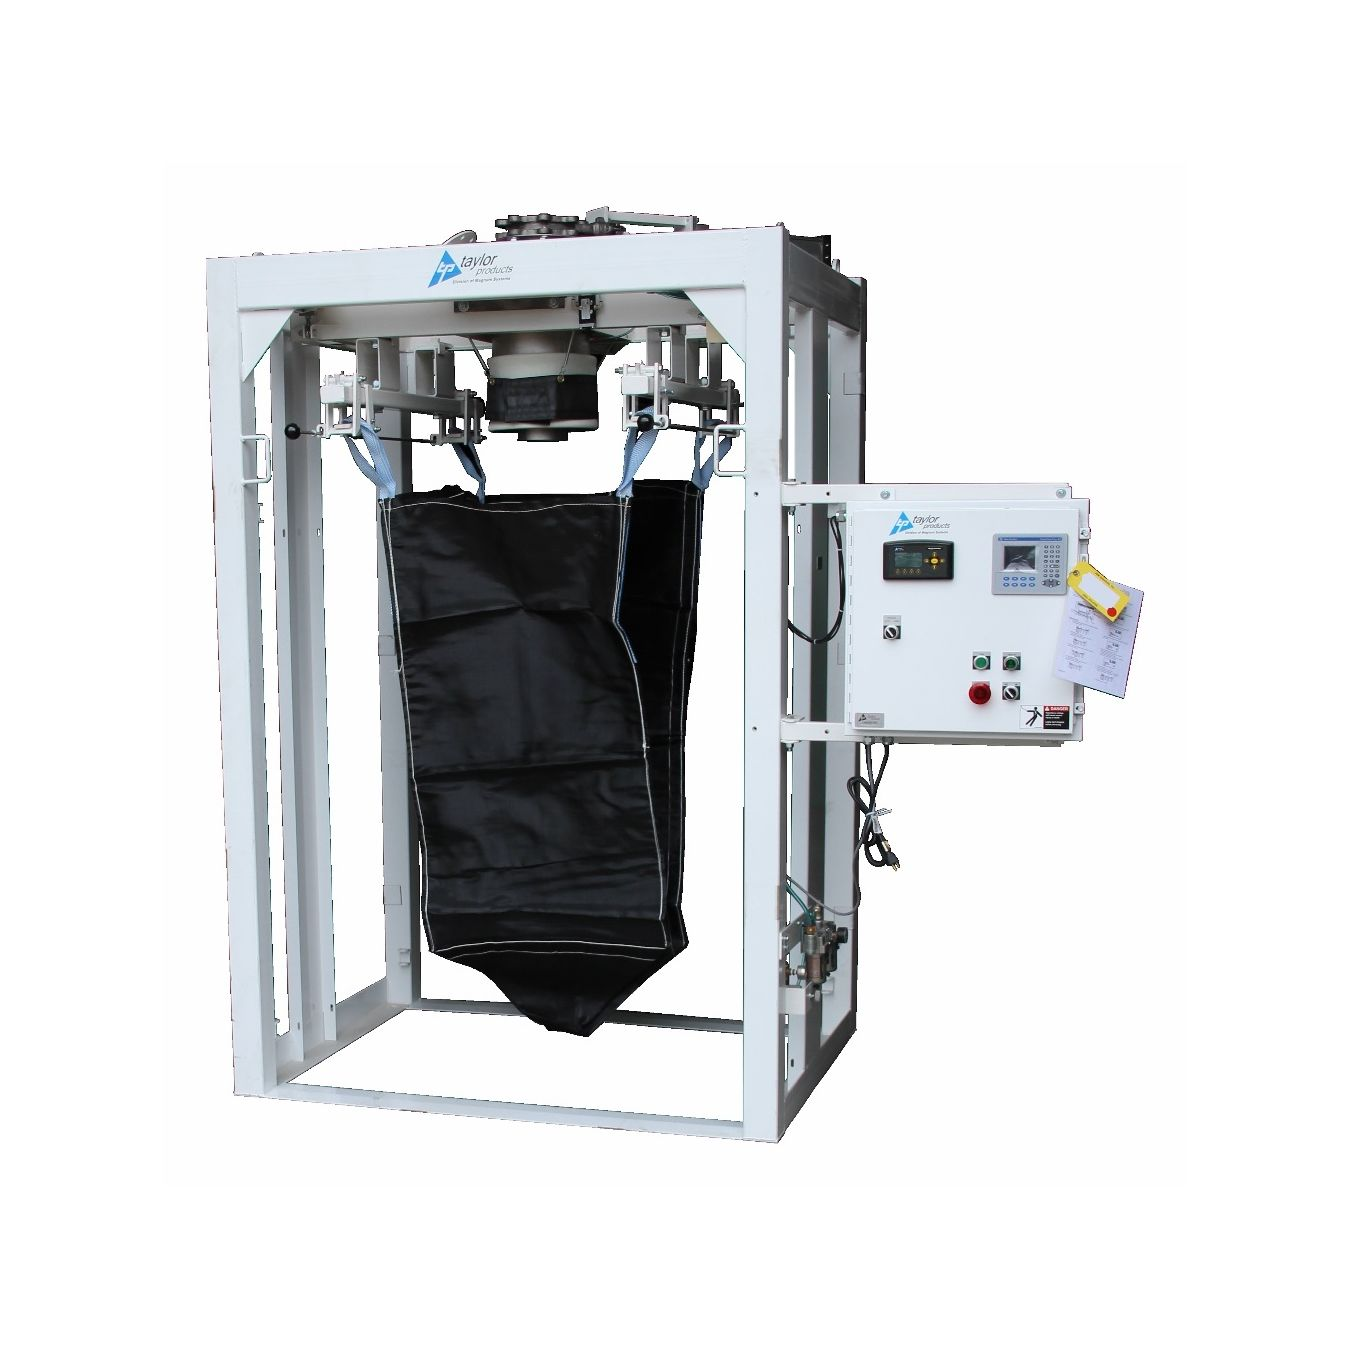 New Taylor Products Bulk Bag Ibc Filler Ibc 3000 Super